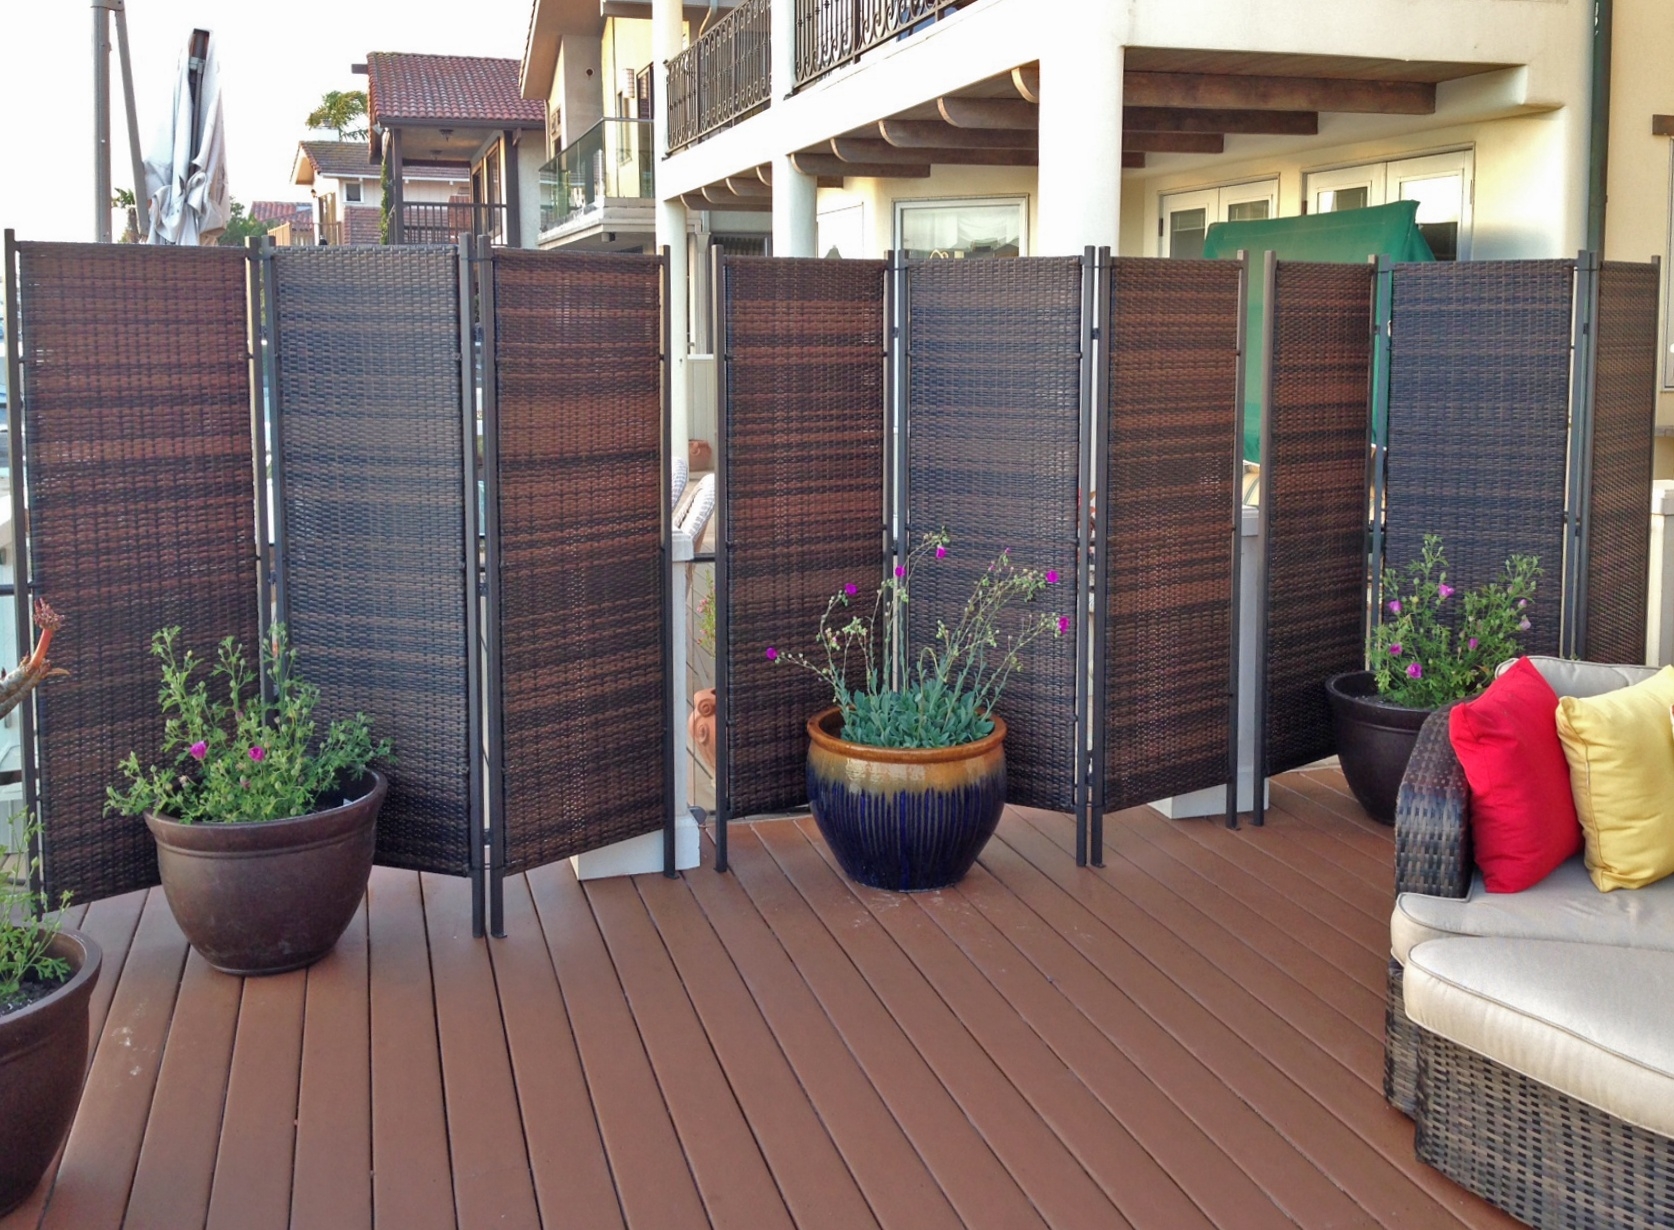 More privacy for your deck or patio amazing deck for Patio deck privacy screen